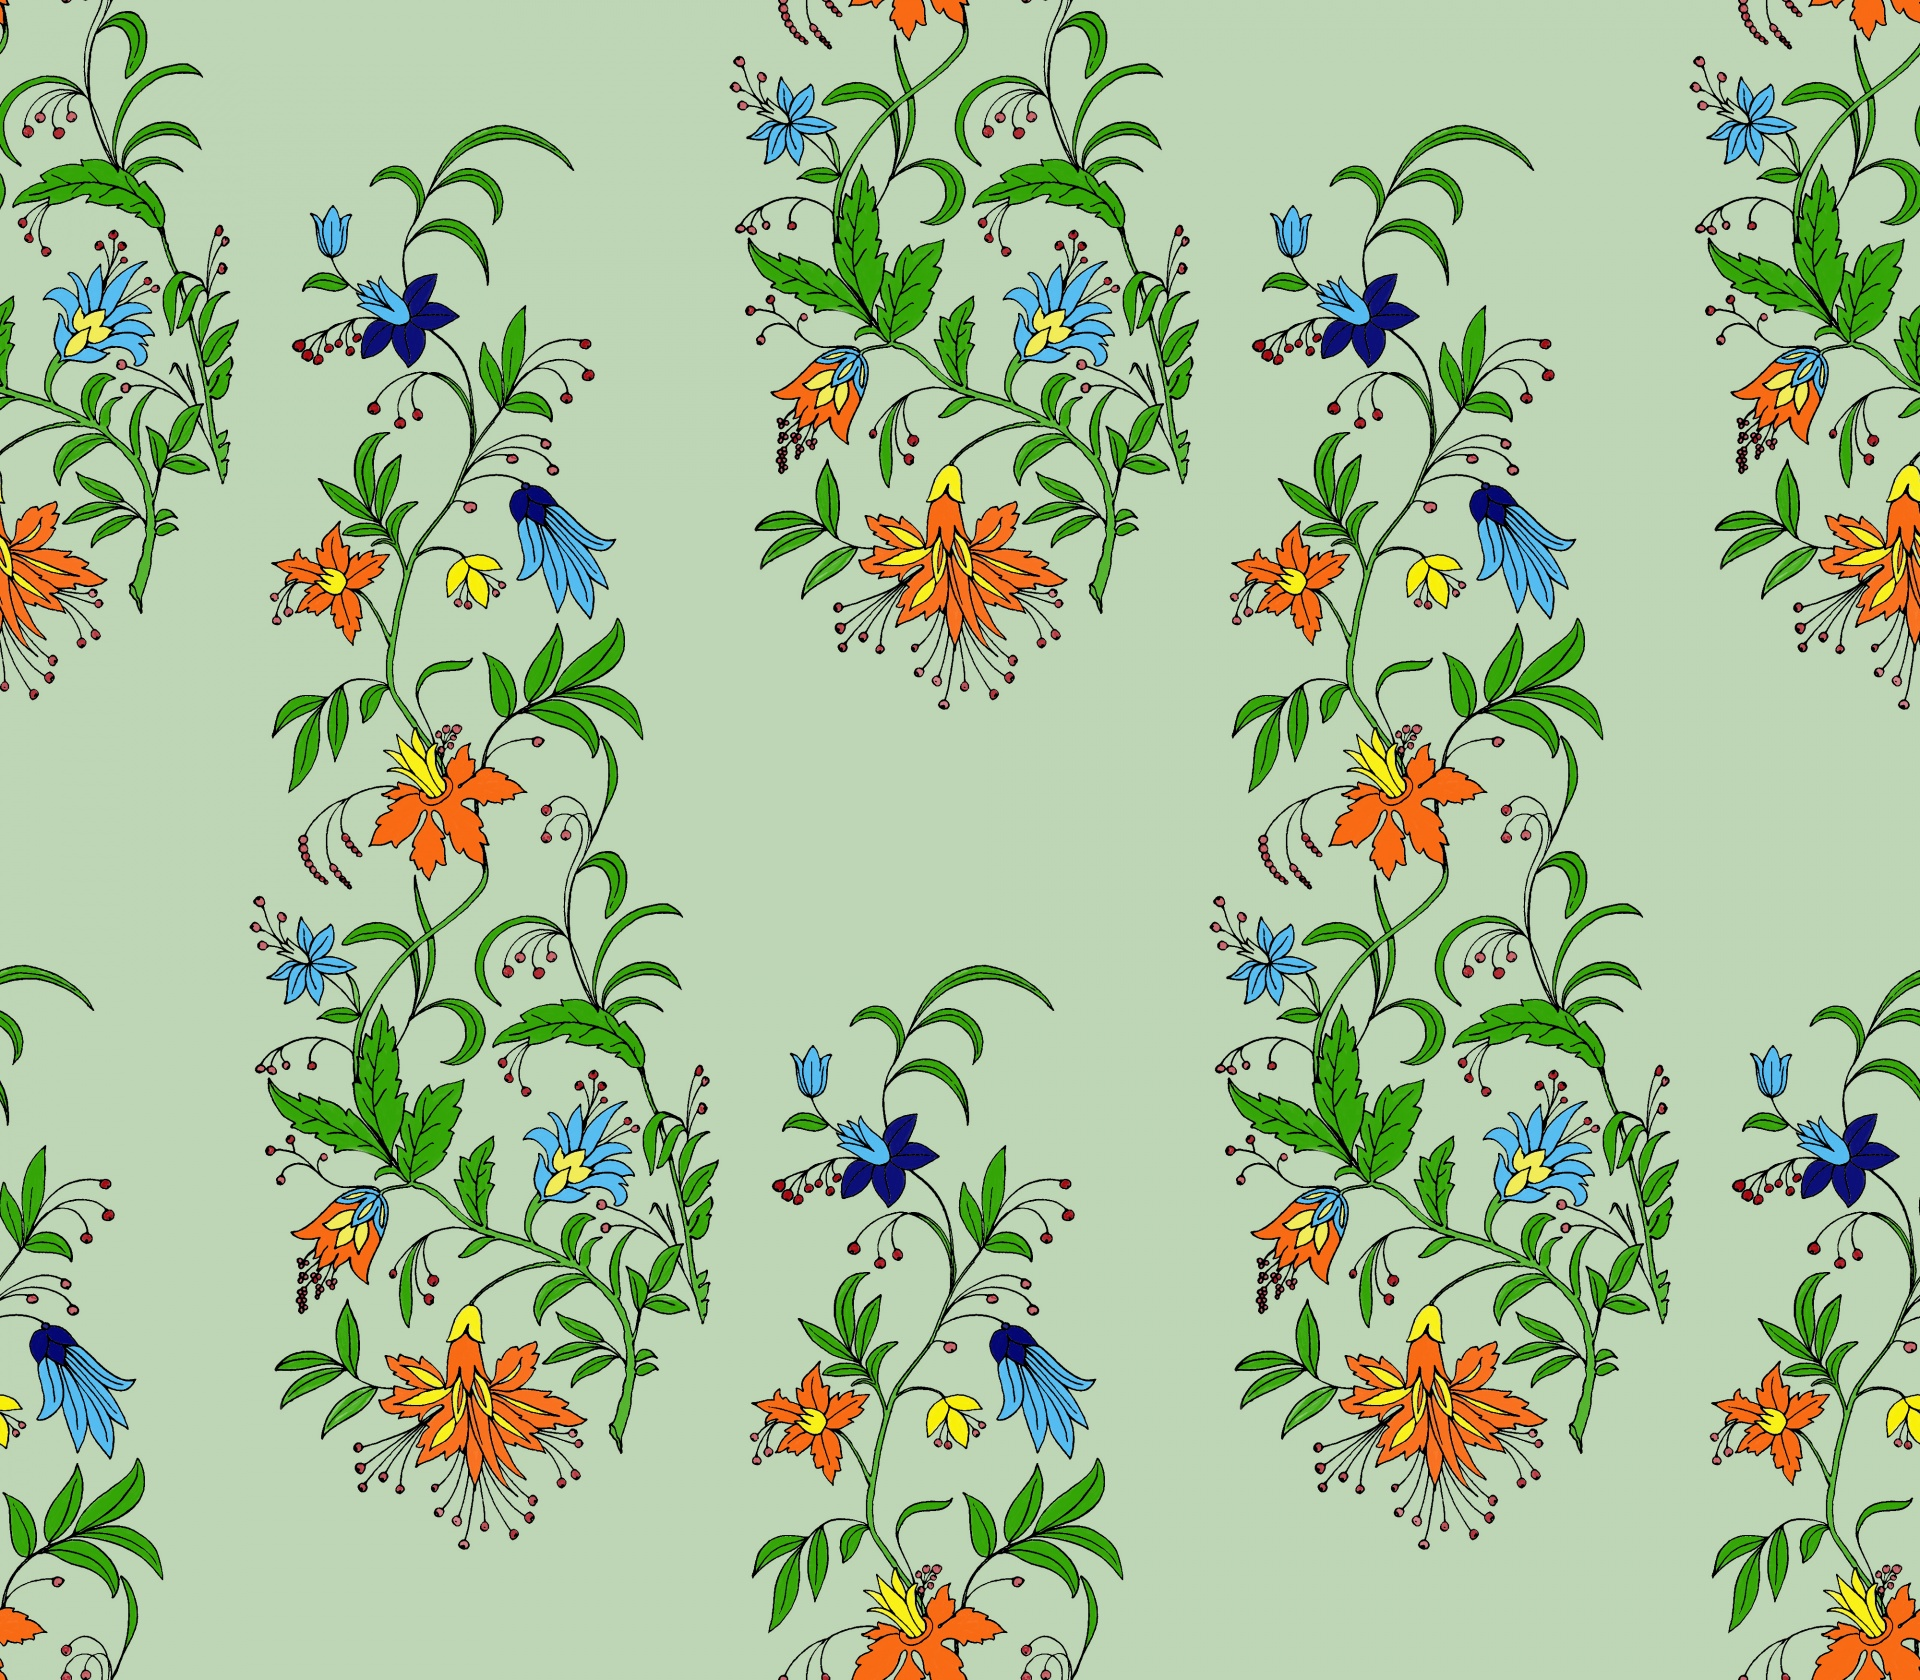 Floral Background Vintage Flowers Ornamental Free Image From